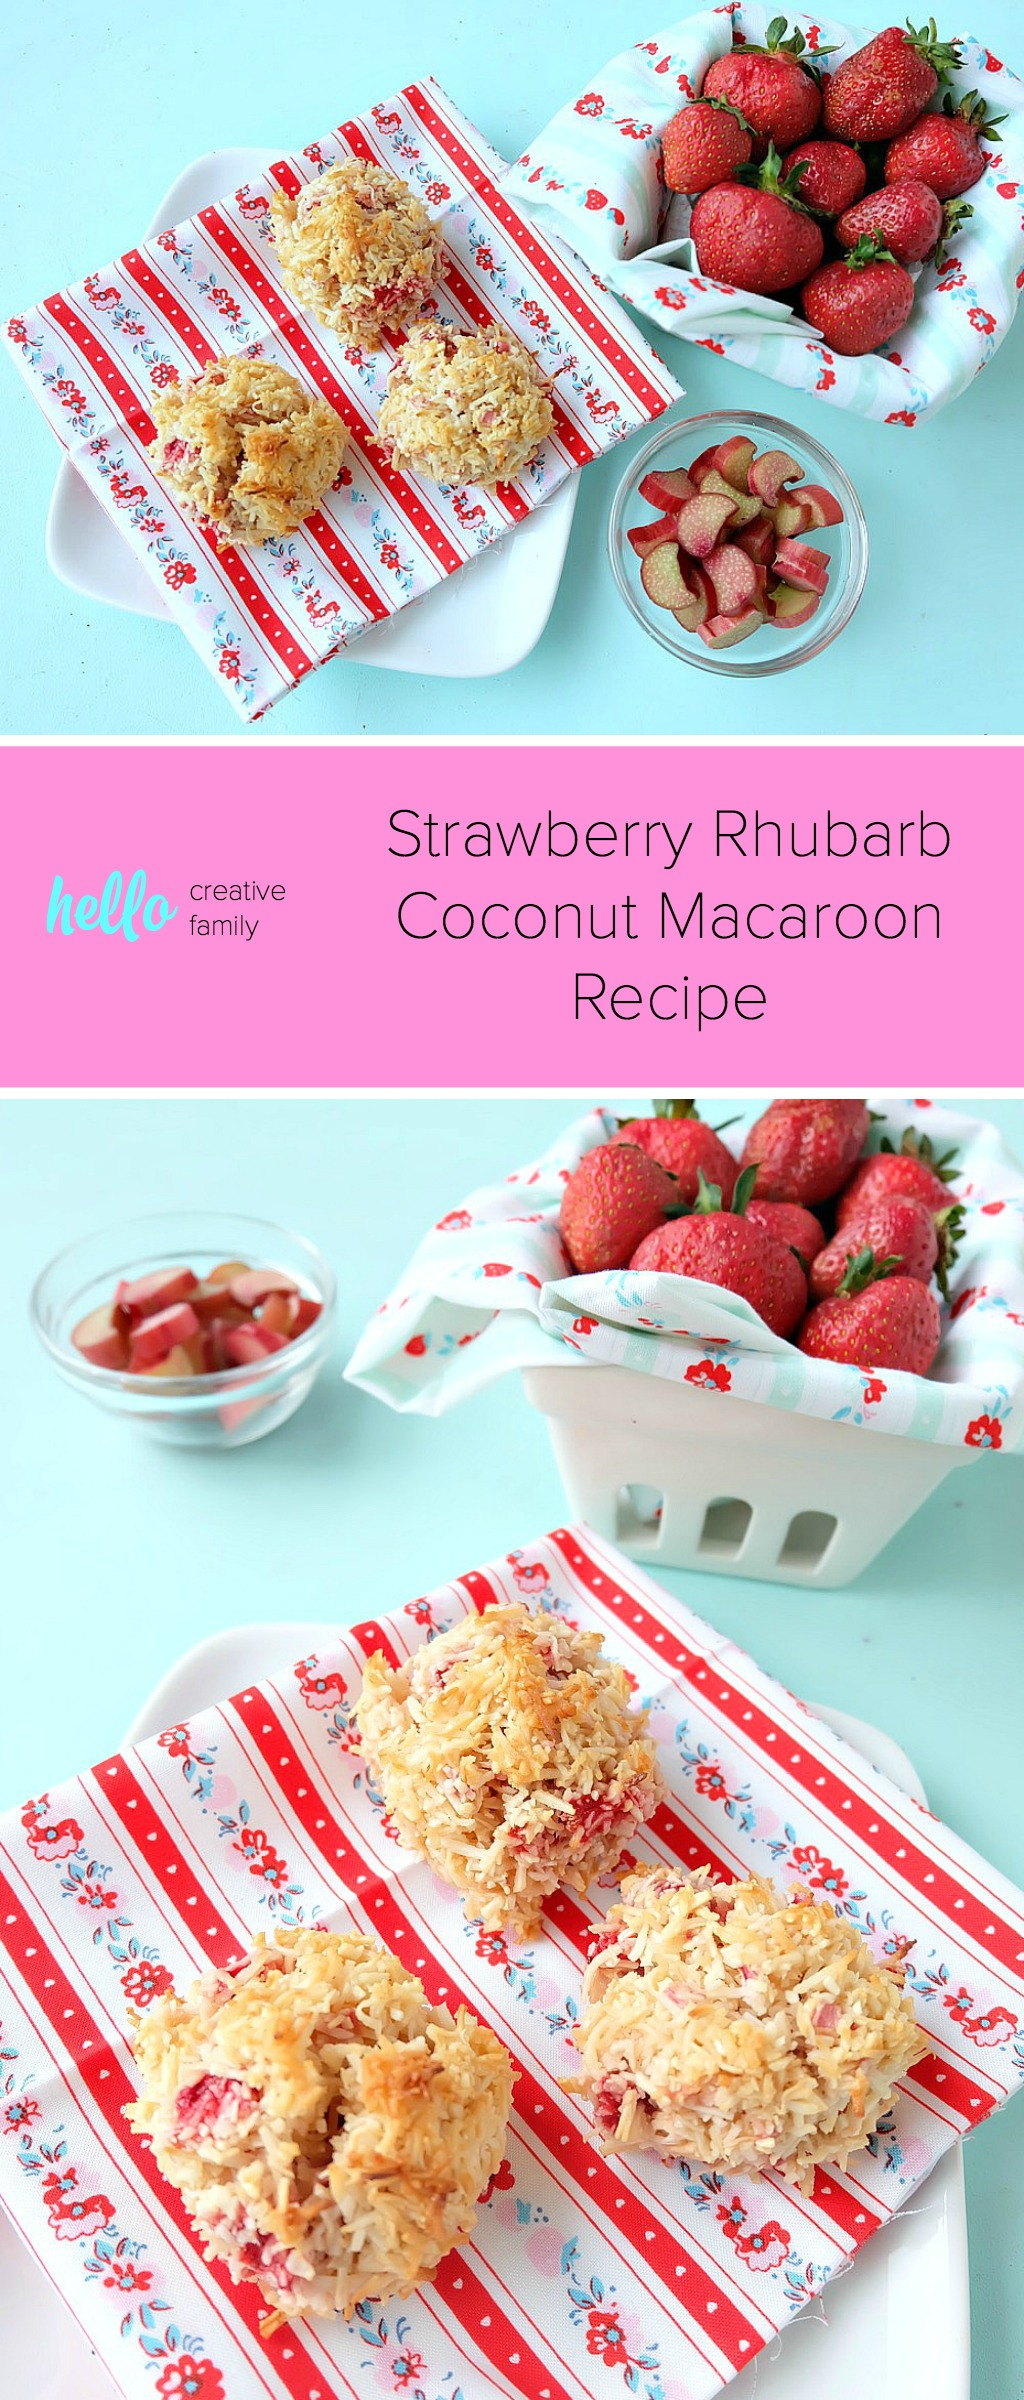 The perfect summer dessert idea! Fresh strawberries and rhubarb come together combined with the tropical flavor of coconut in this delicious, easy to prepare dessert idea! This Strawberry Rhubarb Coconut Macaroon Recipe is simple to make and is a perfect for kids baking! Makes a great freezer dessert too, freeze extras and have cookies for months! #Baking #StrawberryRhubarb #Coconut #Macaroon #Dessert